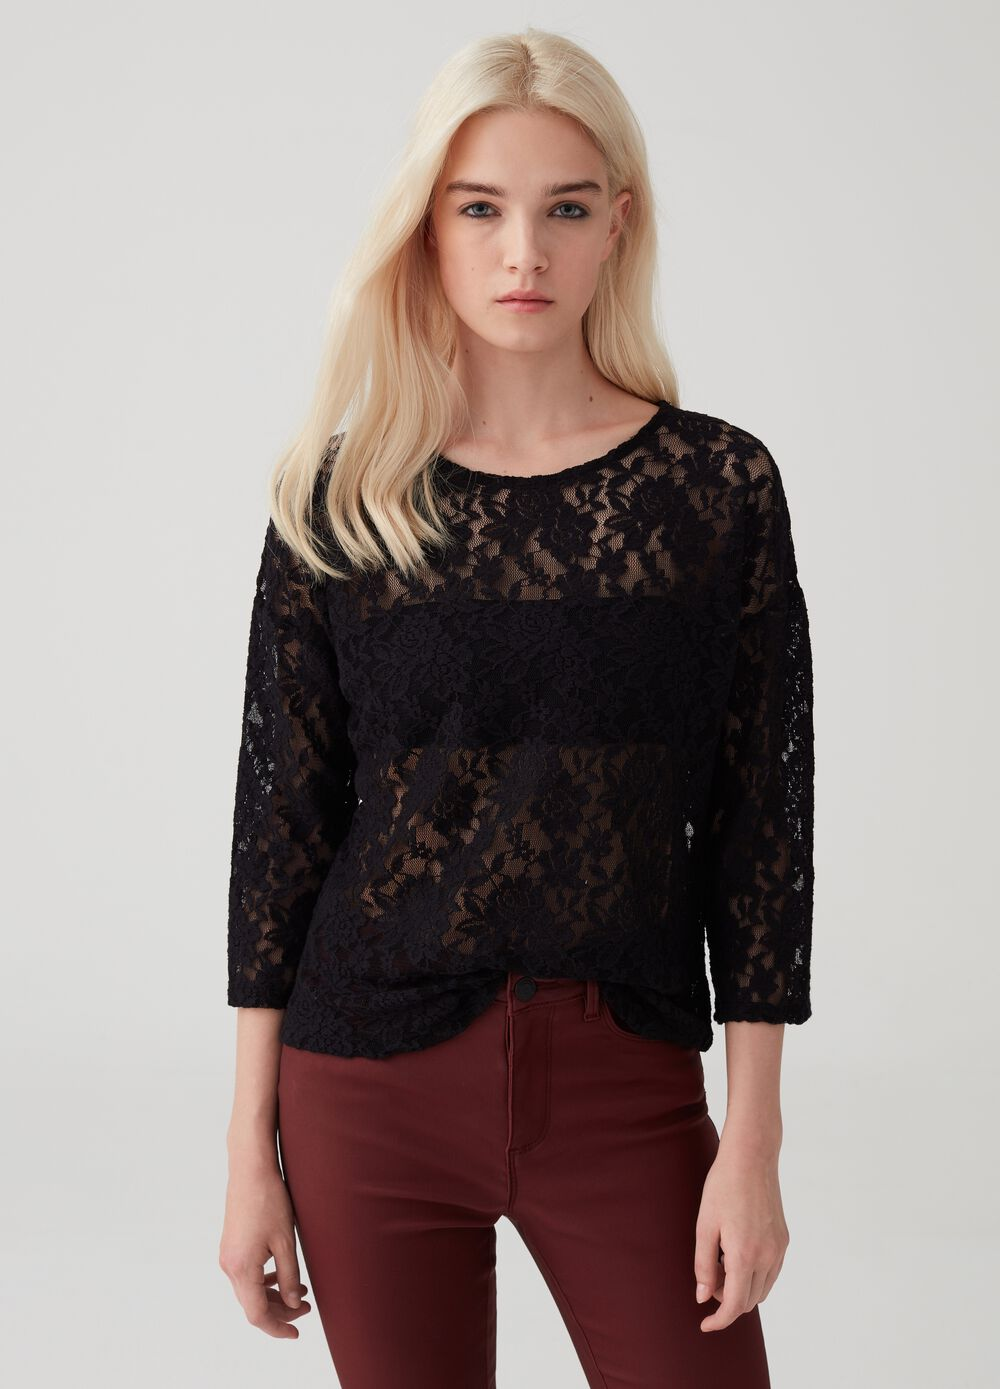 Lace top with three-quarter sleeves